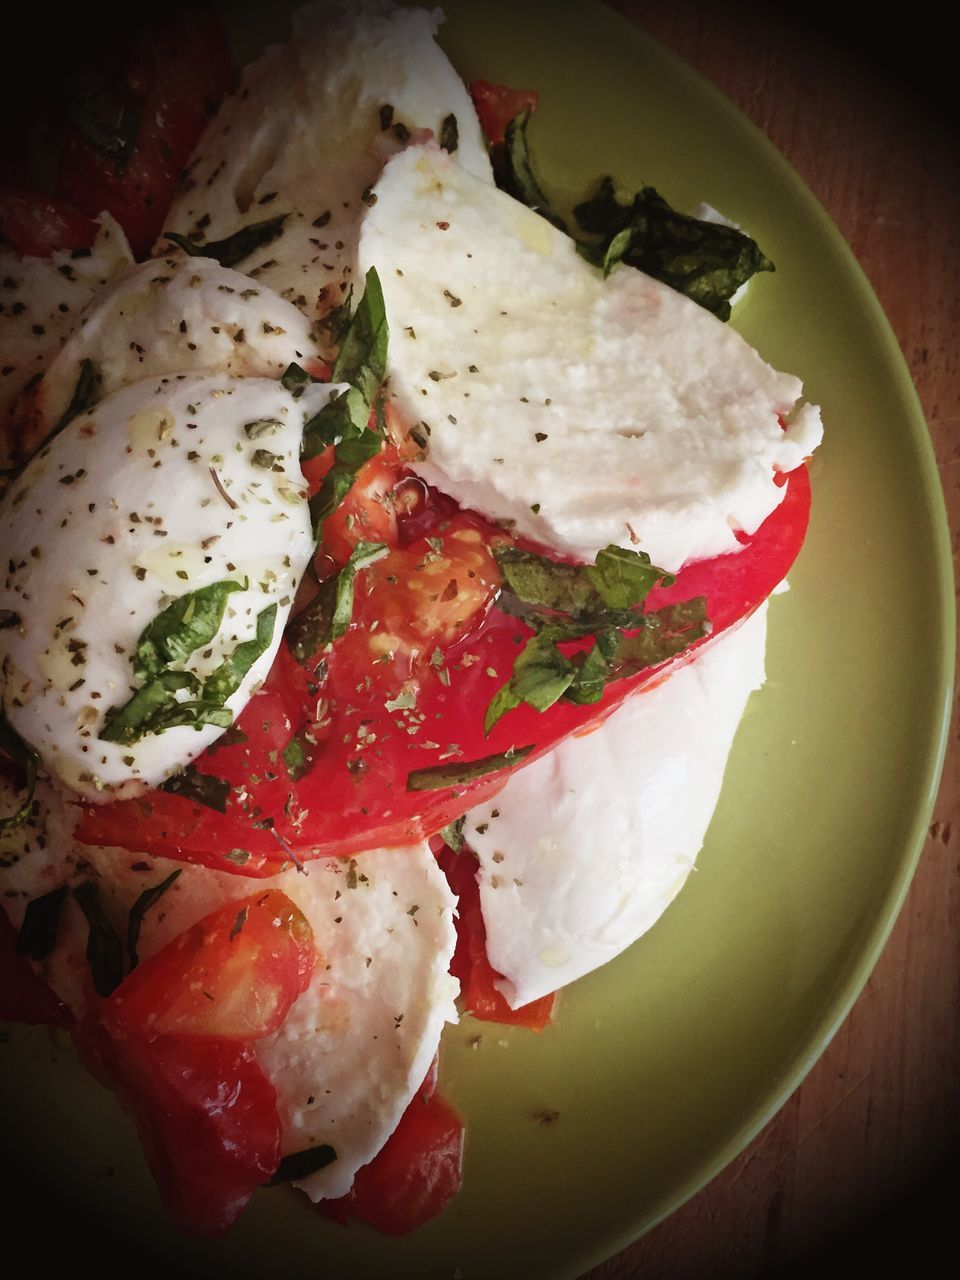 Top View Of Tomato And Cheese Salad Garnished With Basil Leaves And Herbs